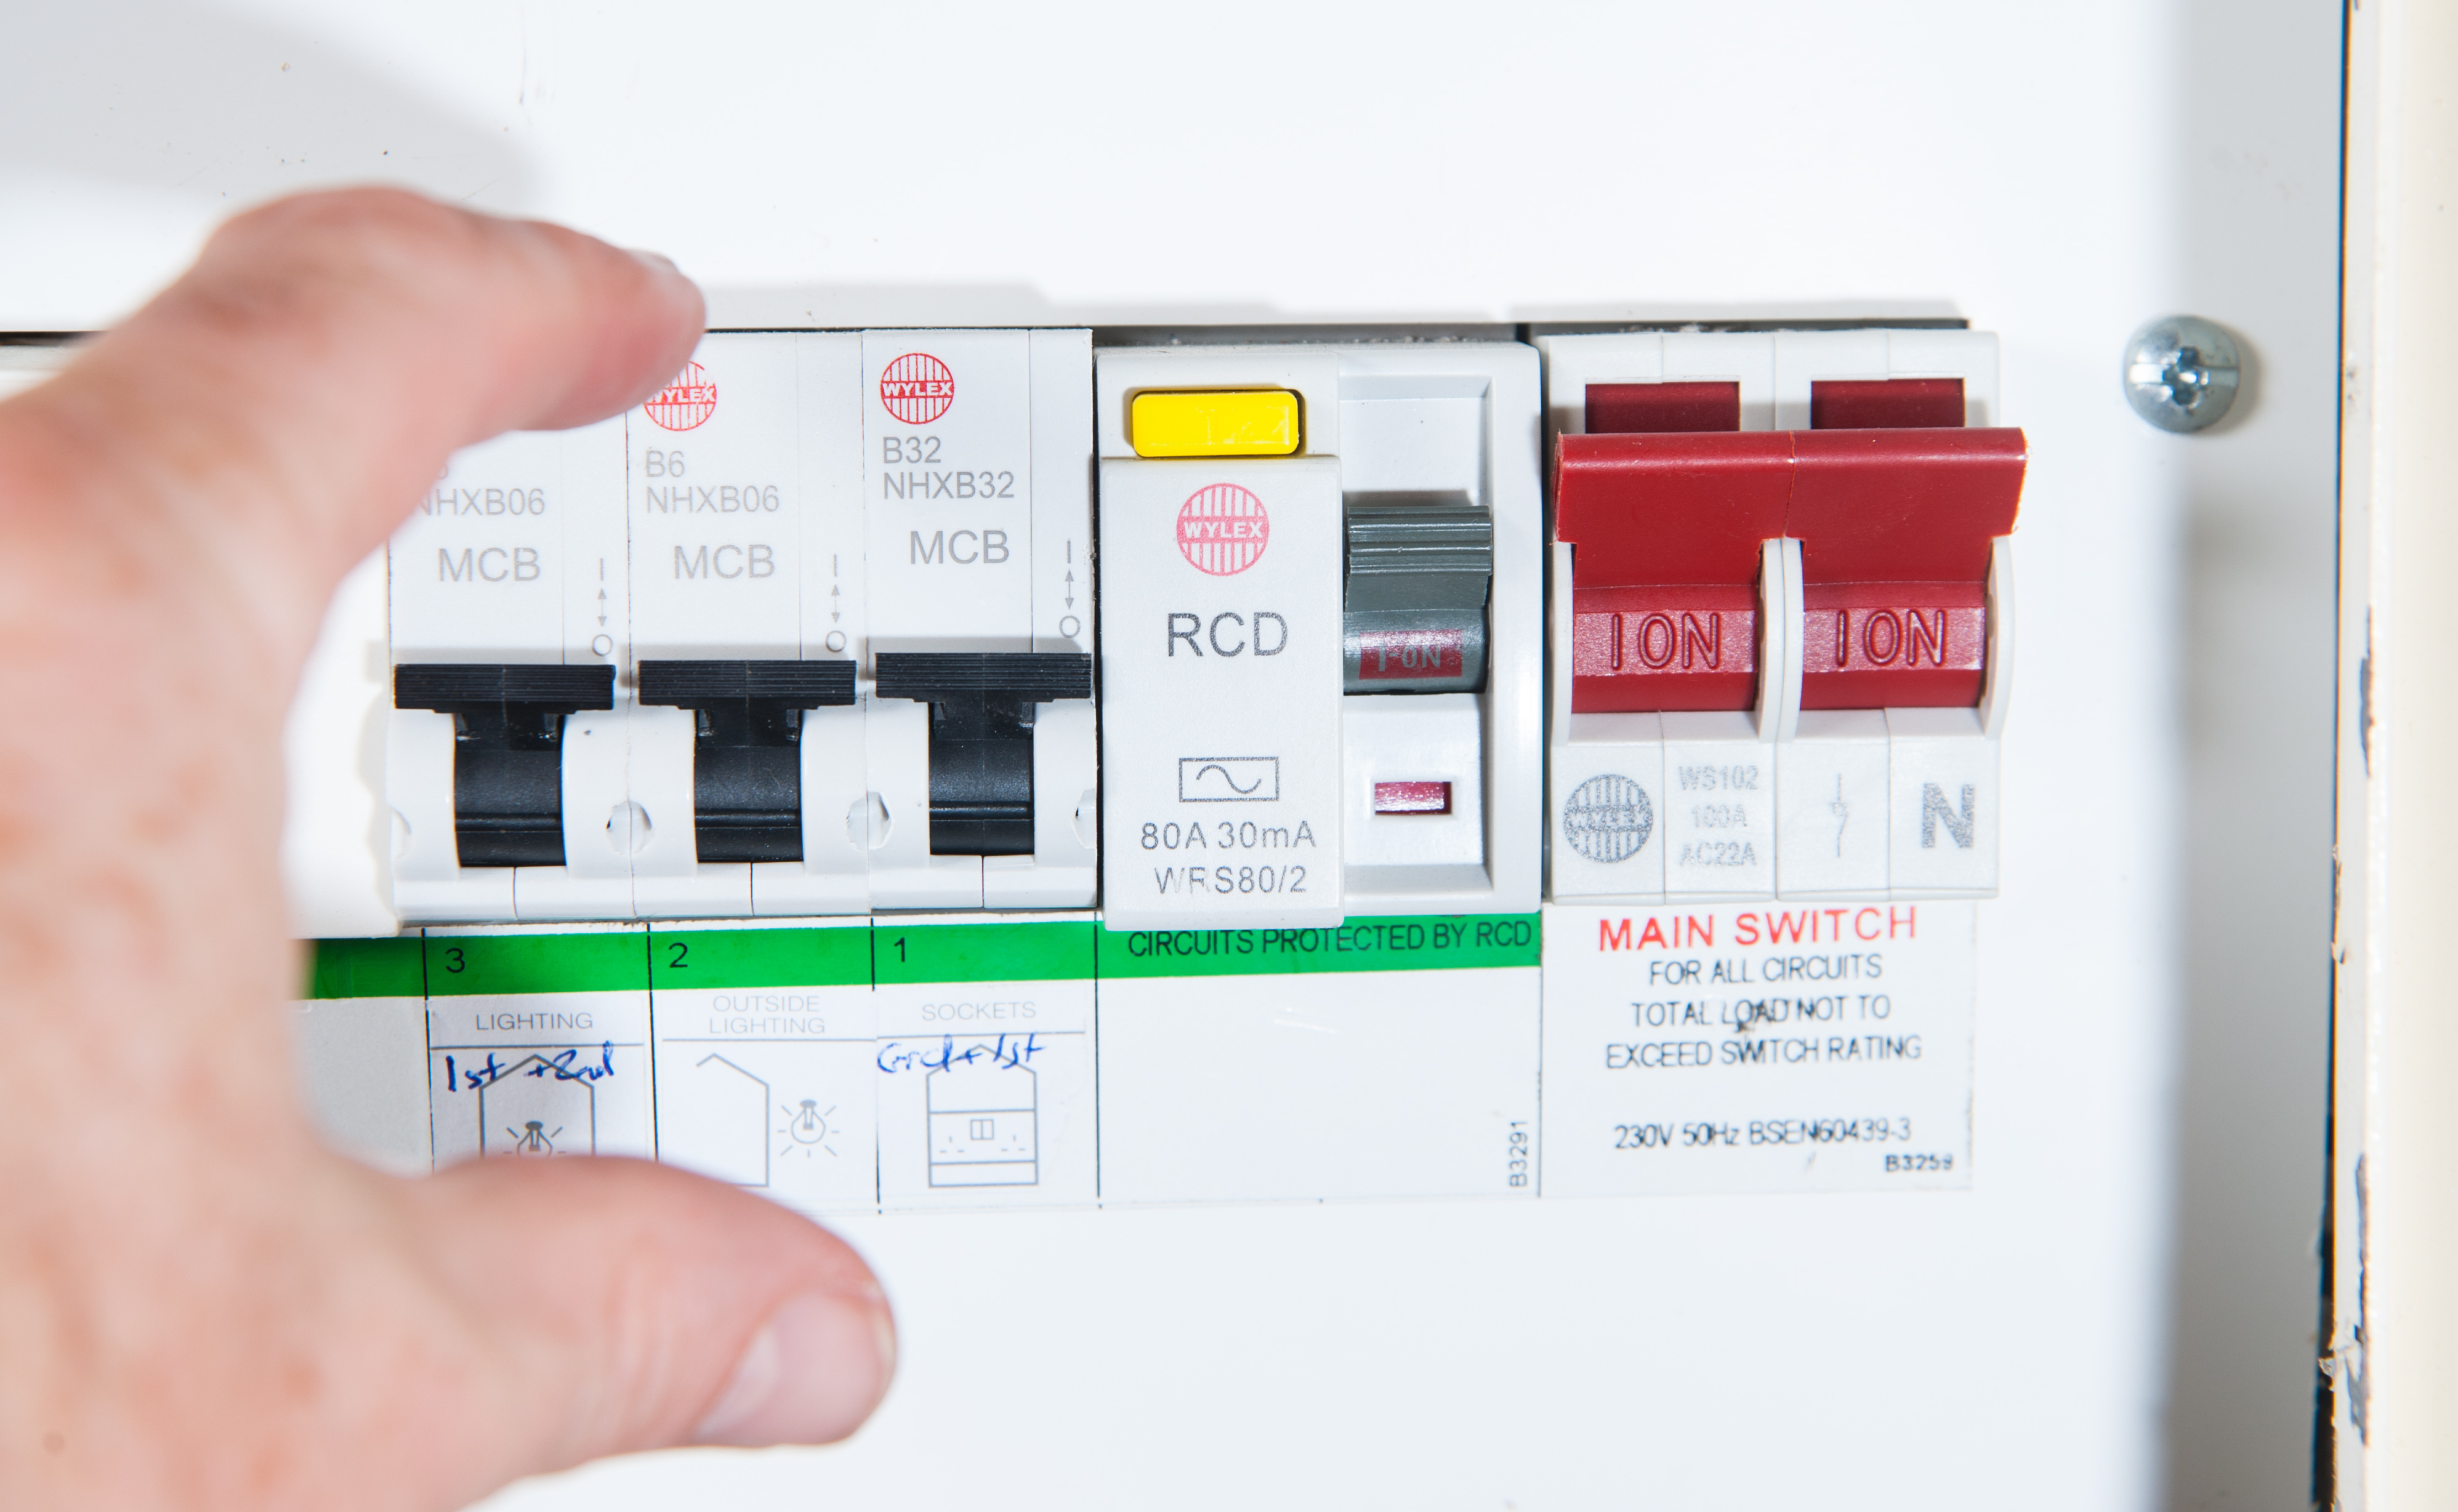 domestic rga electrical solutions 2000 ford focus fuse box diagram domestic home electrics main fuse box photograph taken by simon dack